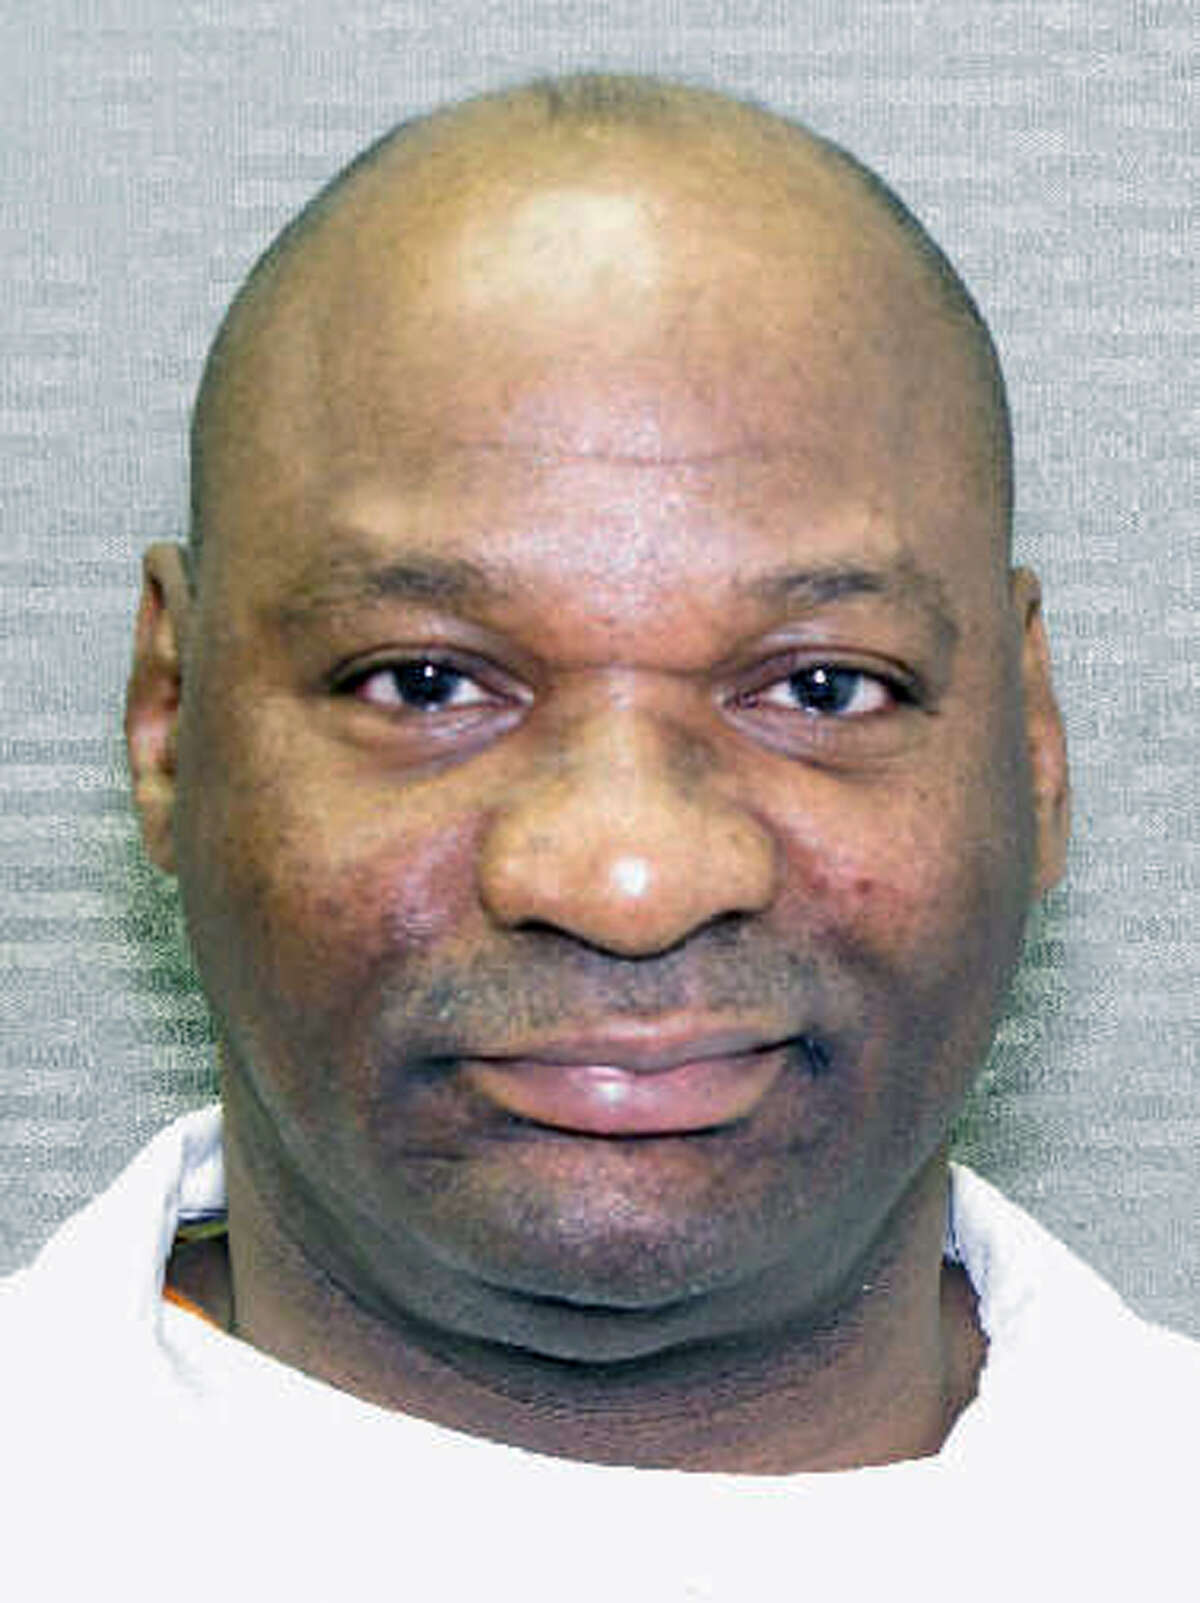 FILE - This undated photo provided by the Texas Department of Criminal Justice shows inmate Bobby Moore. The U.S. The Supreme Court has sided with a Texas death row inmate Moore who claims he should not be executed because he is intellectually disabled. (Texas Department of Criminal Justice via AP, File)